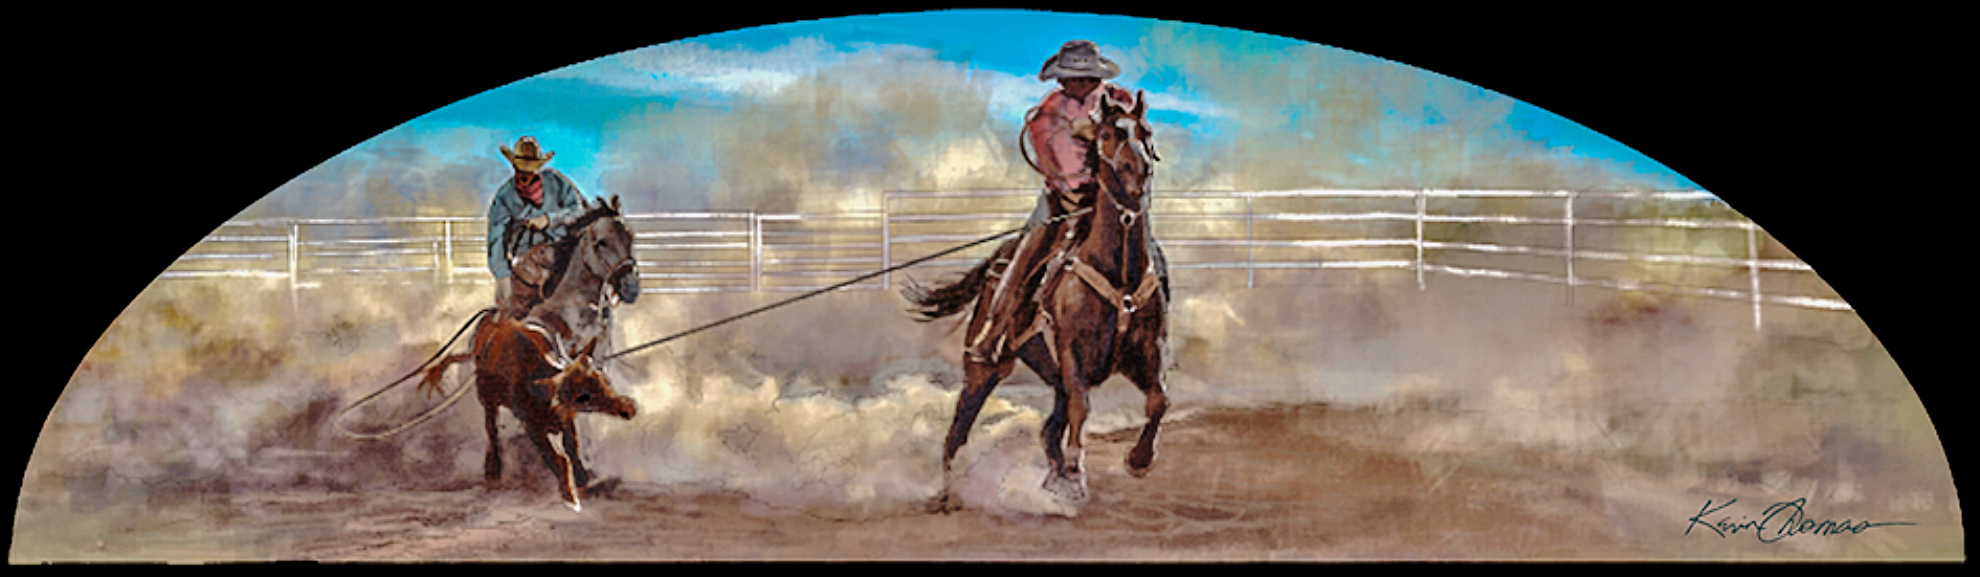 """Cowboys roping calf"" • Digital Mural • 14""h by 48""w • Arched entrance of Fort Worth Zoo, Fort Worth, TX. ©KT"